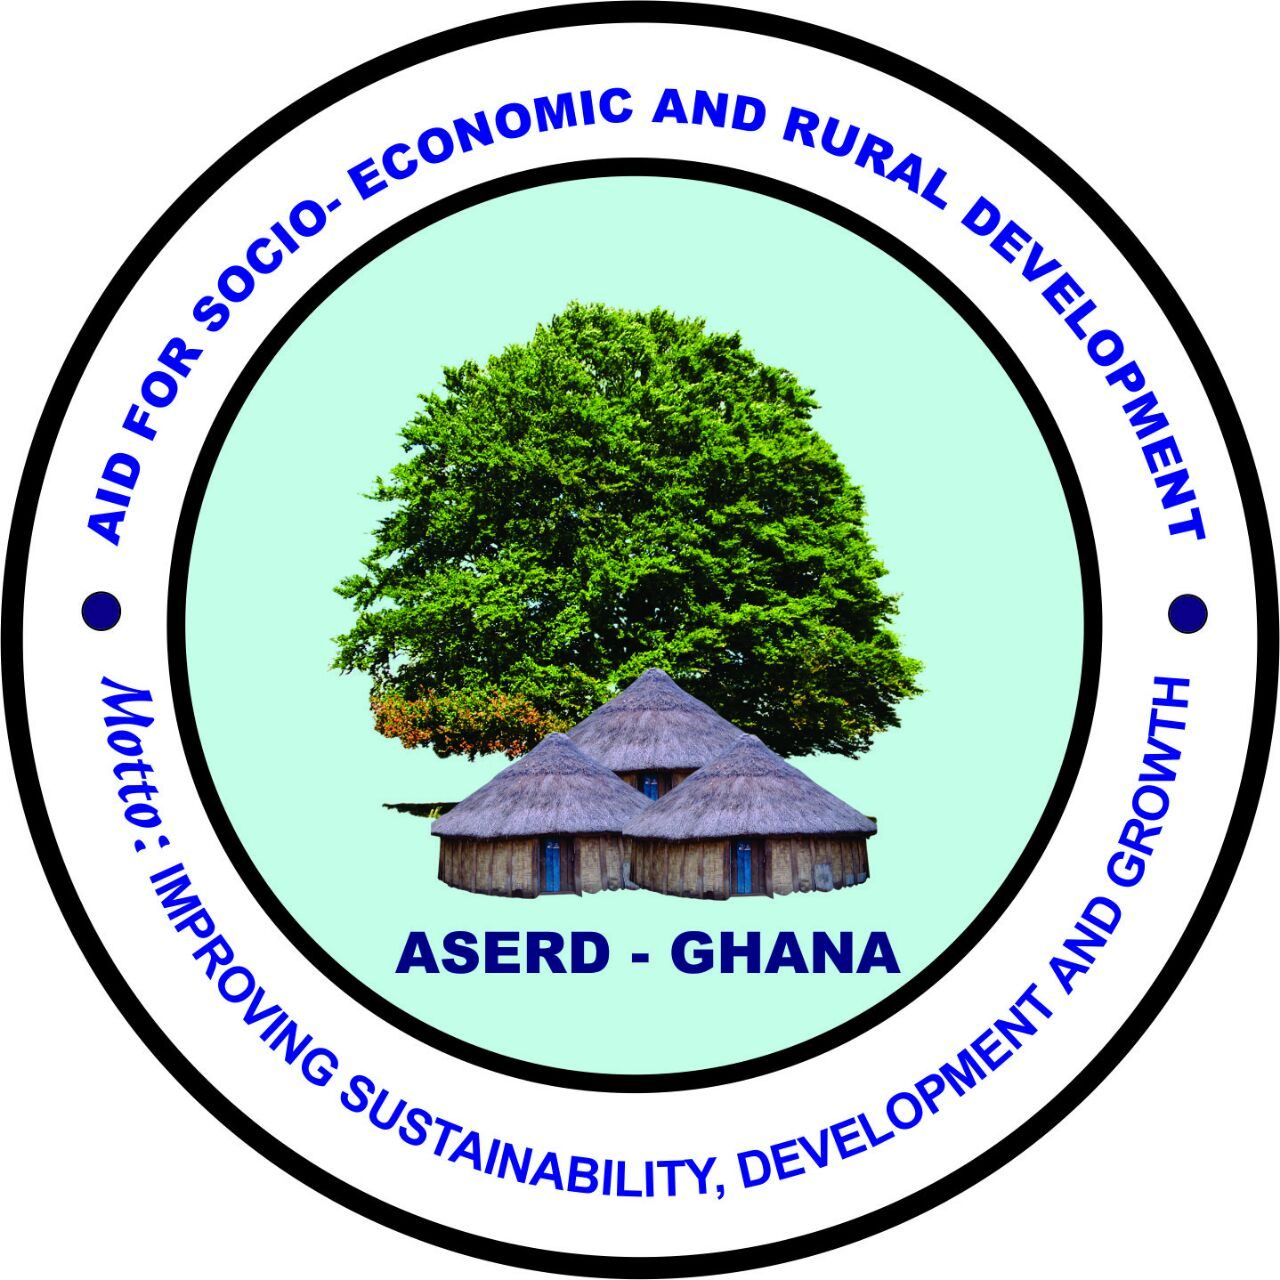 AID FOR SOCIO-ECONOMIC AND RURAL DEVELOPMENT (NGO)